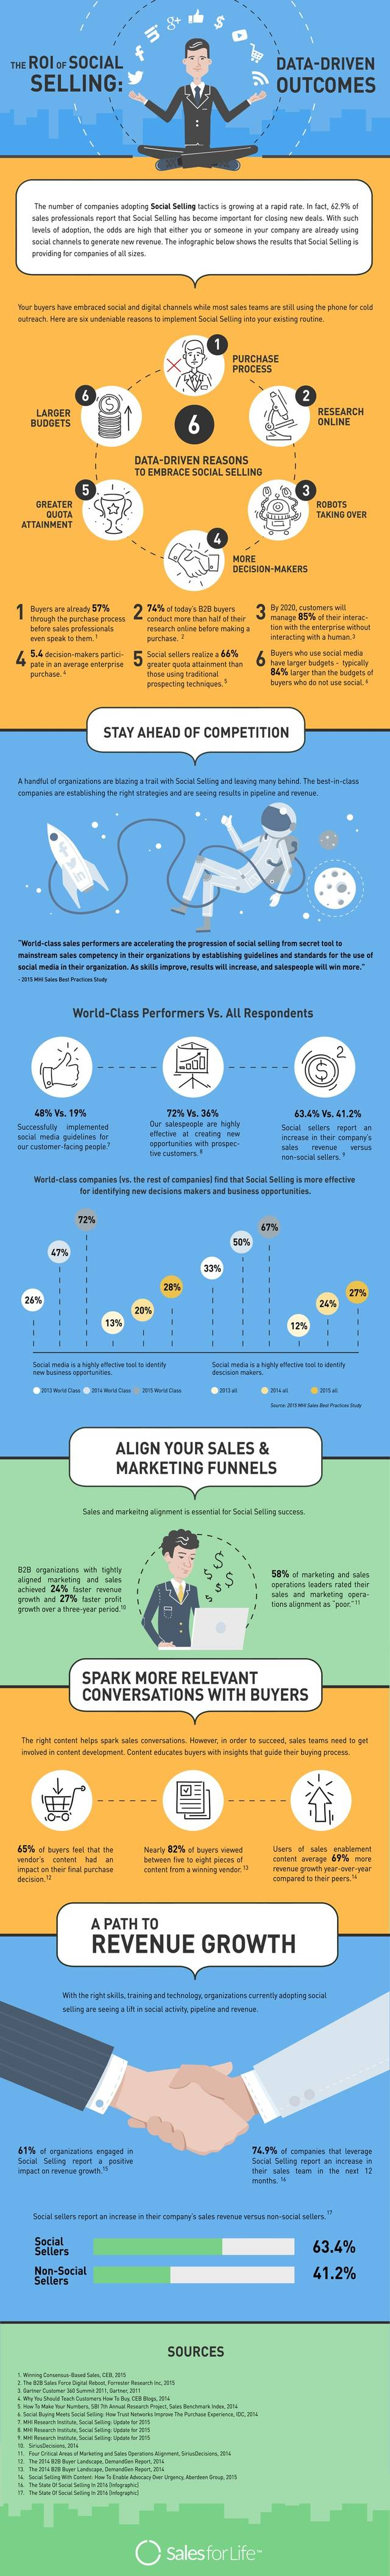 The roi of social selling